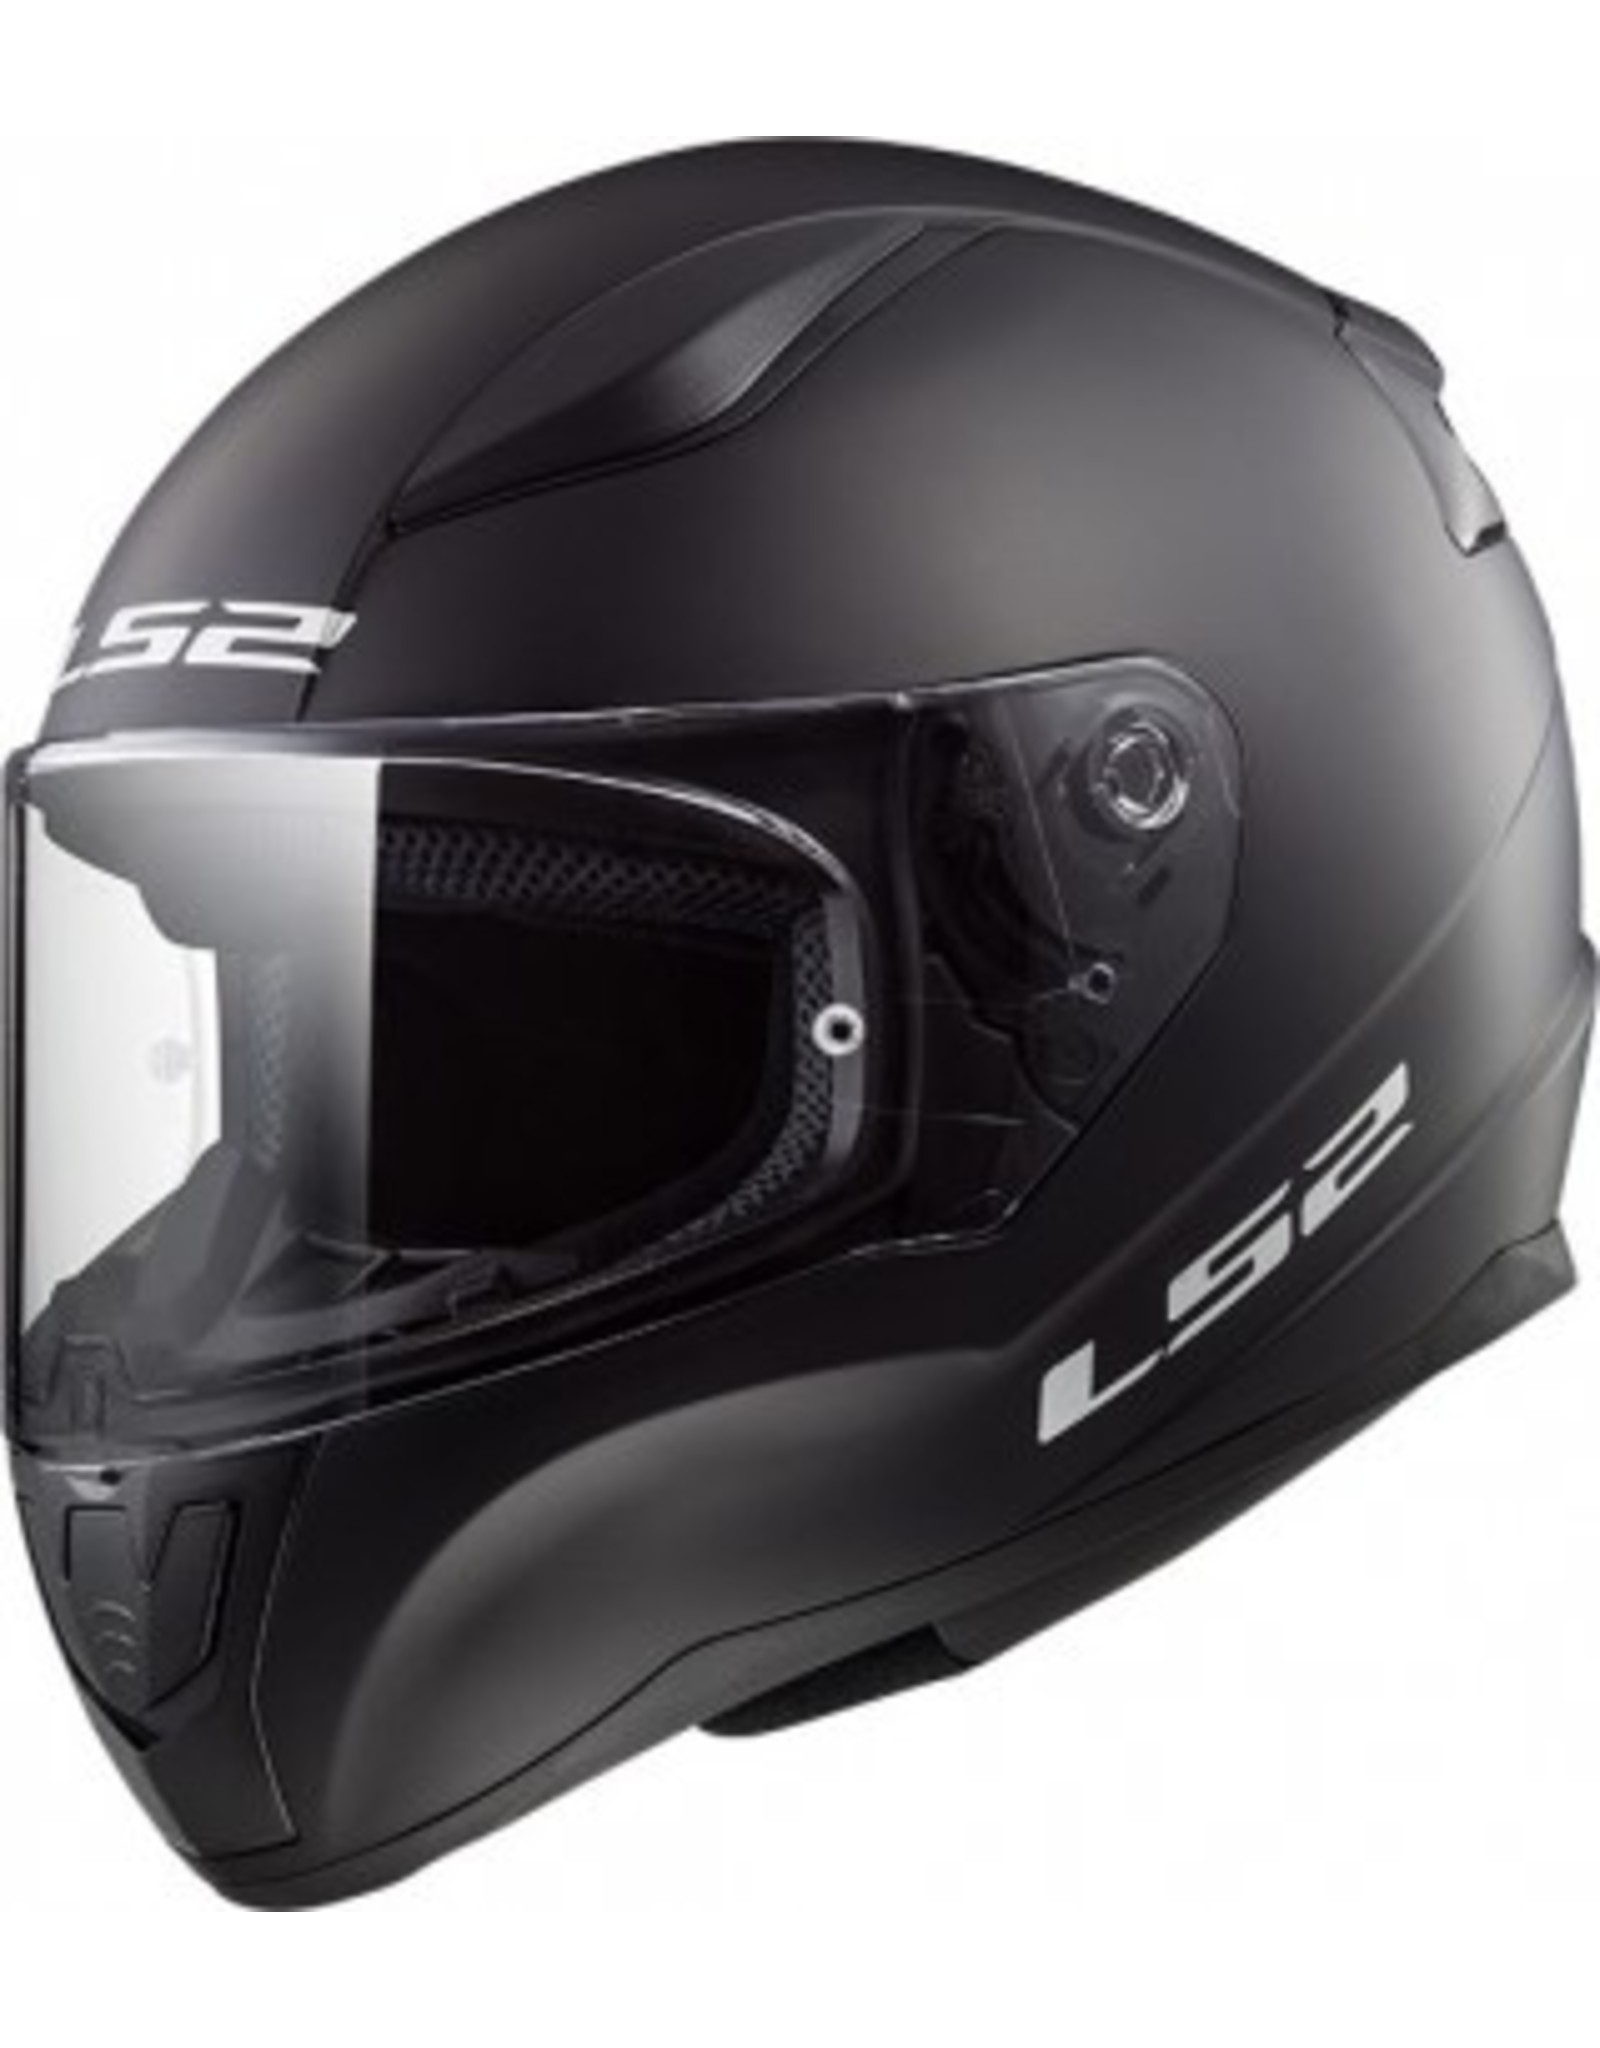 LS2 LS2 FF353 Rapid mini Kids helm matt zwart